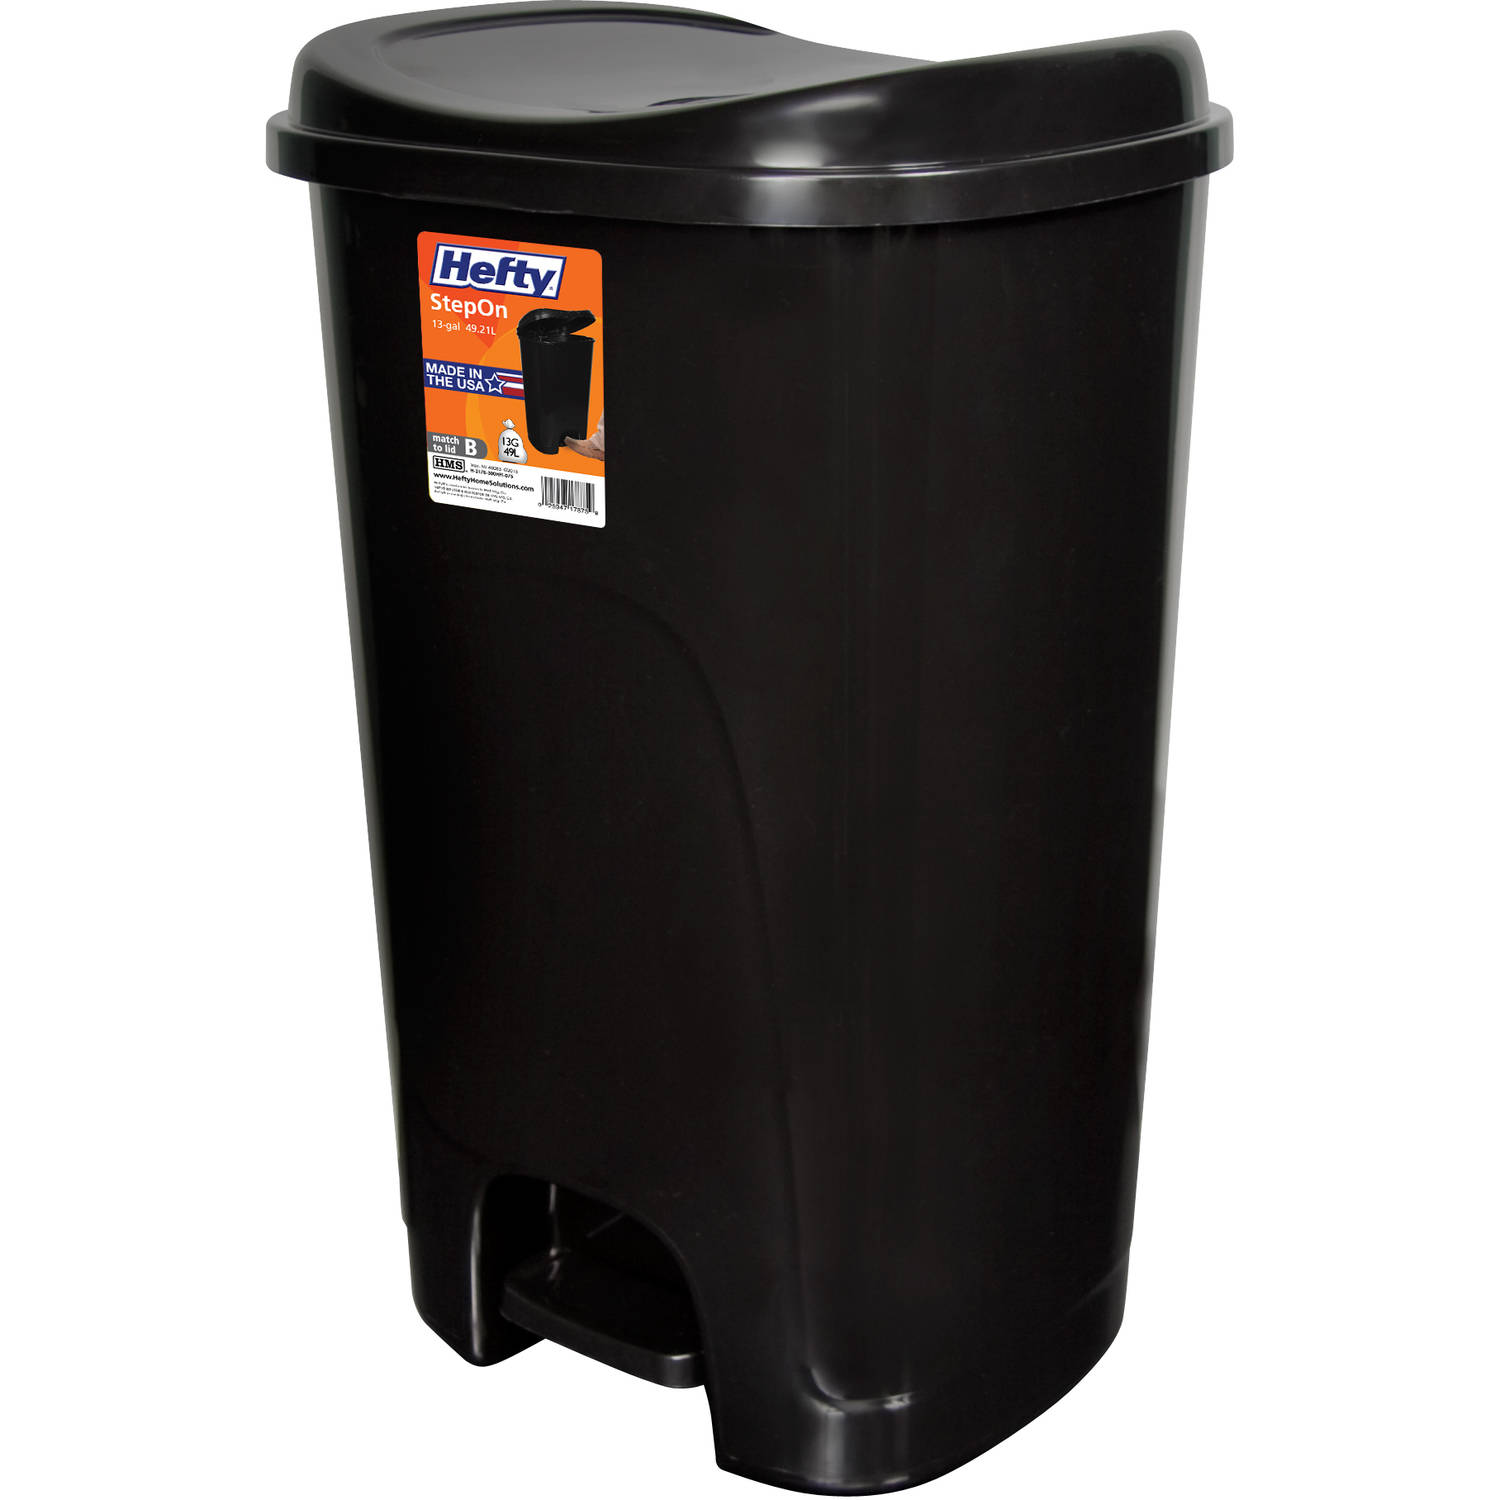 hefty step-on 13-gallon trash can, black - walmart